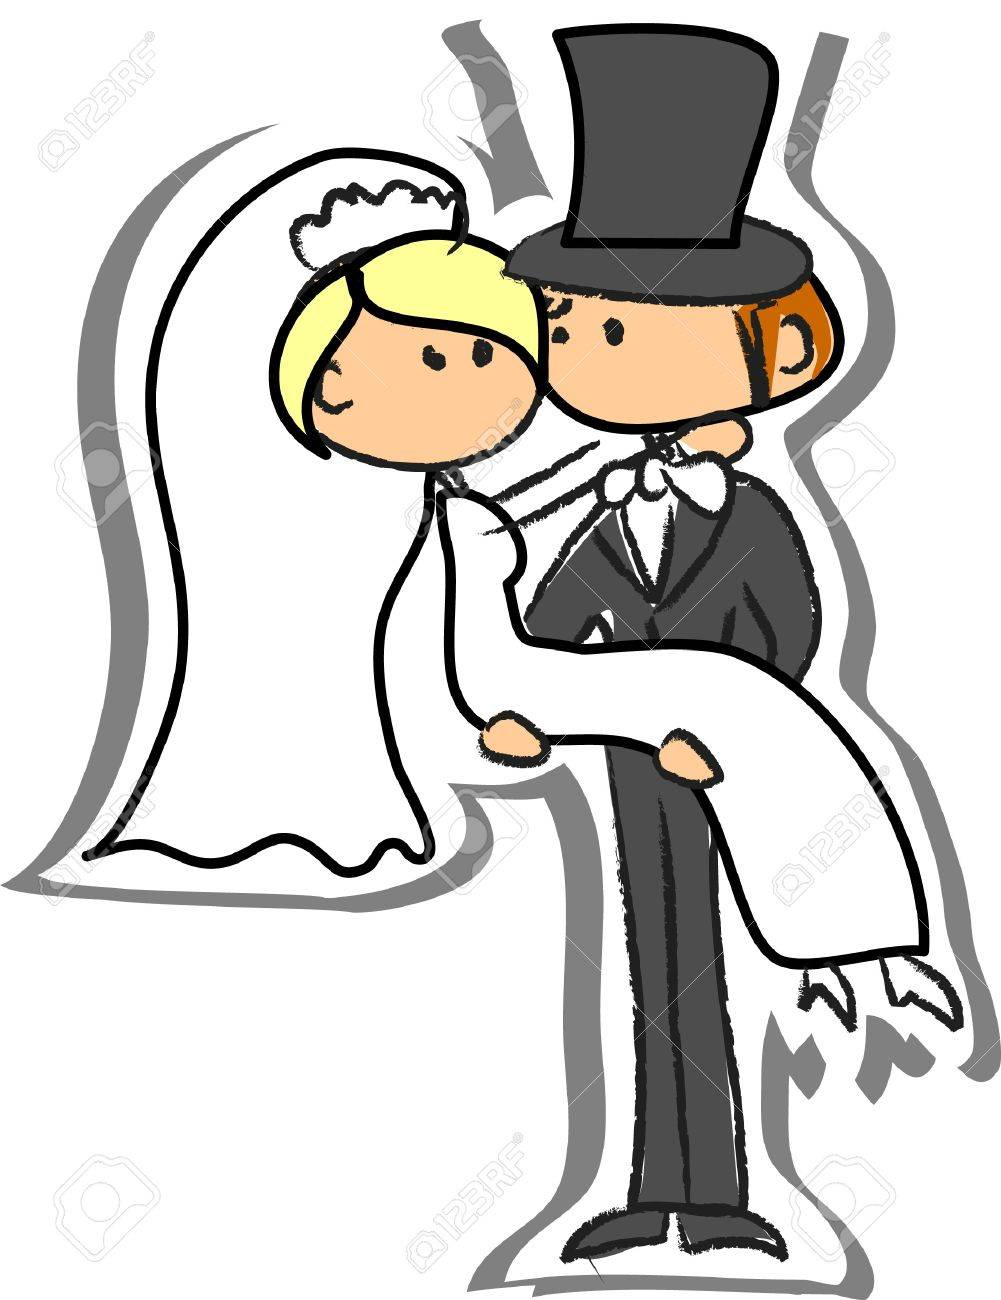 Wedding picture, bride and groom in love Stock Vector - 13858541